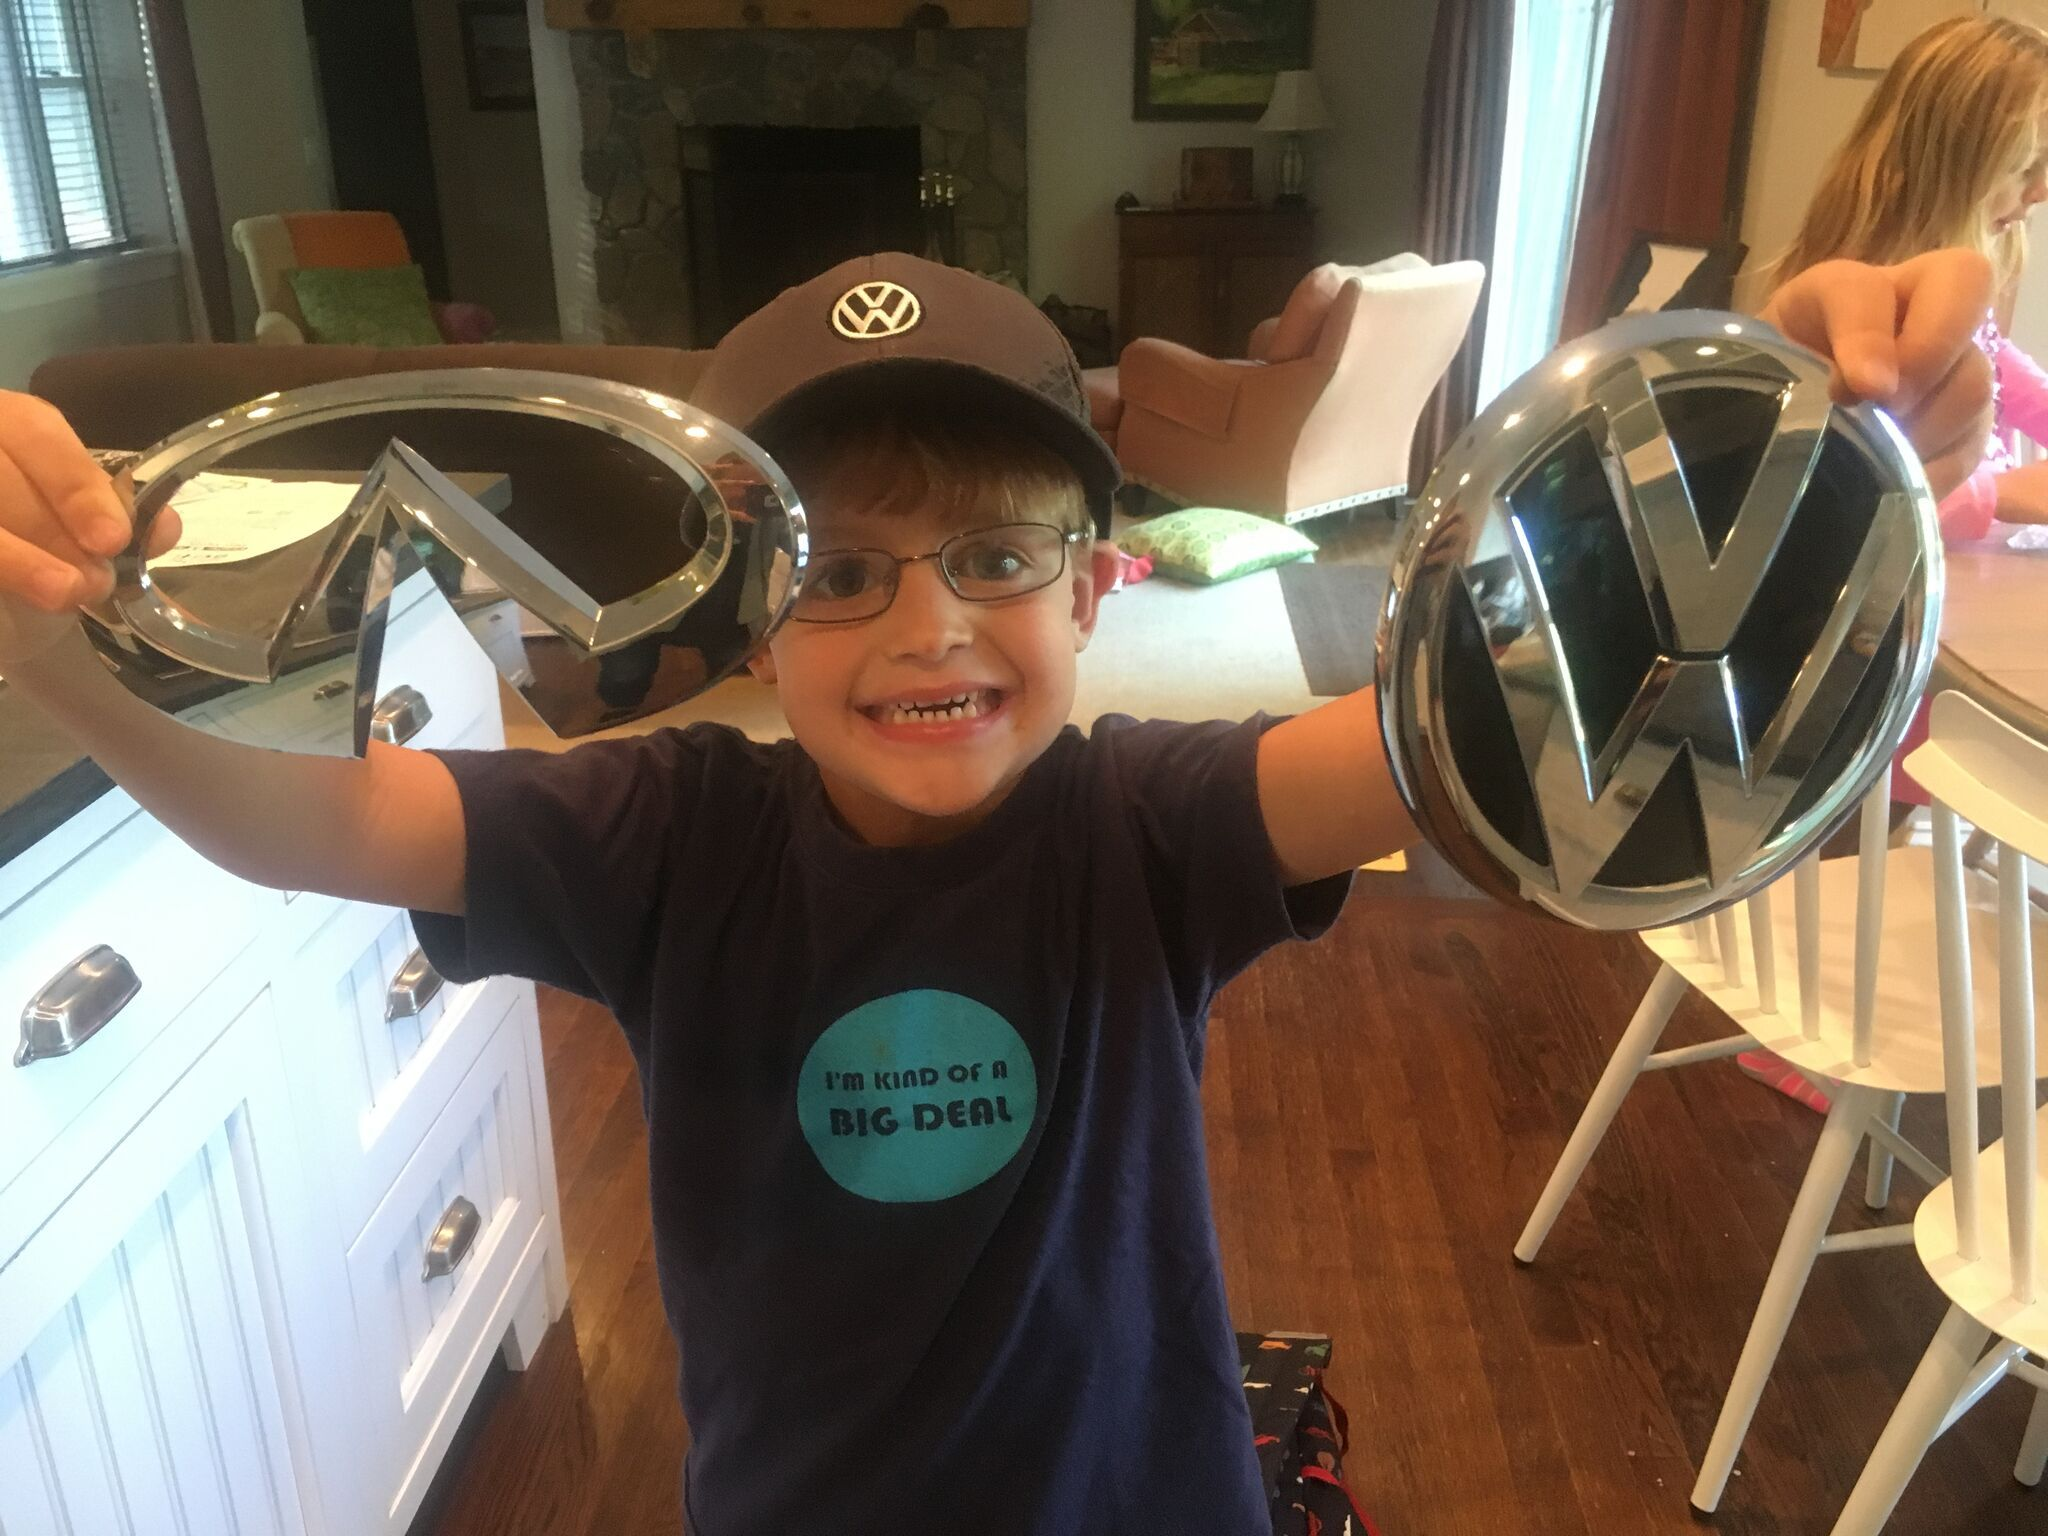 This Kid Asked Each Car Company to Send Him a Decal